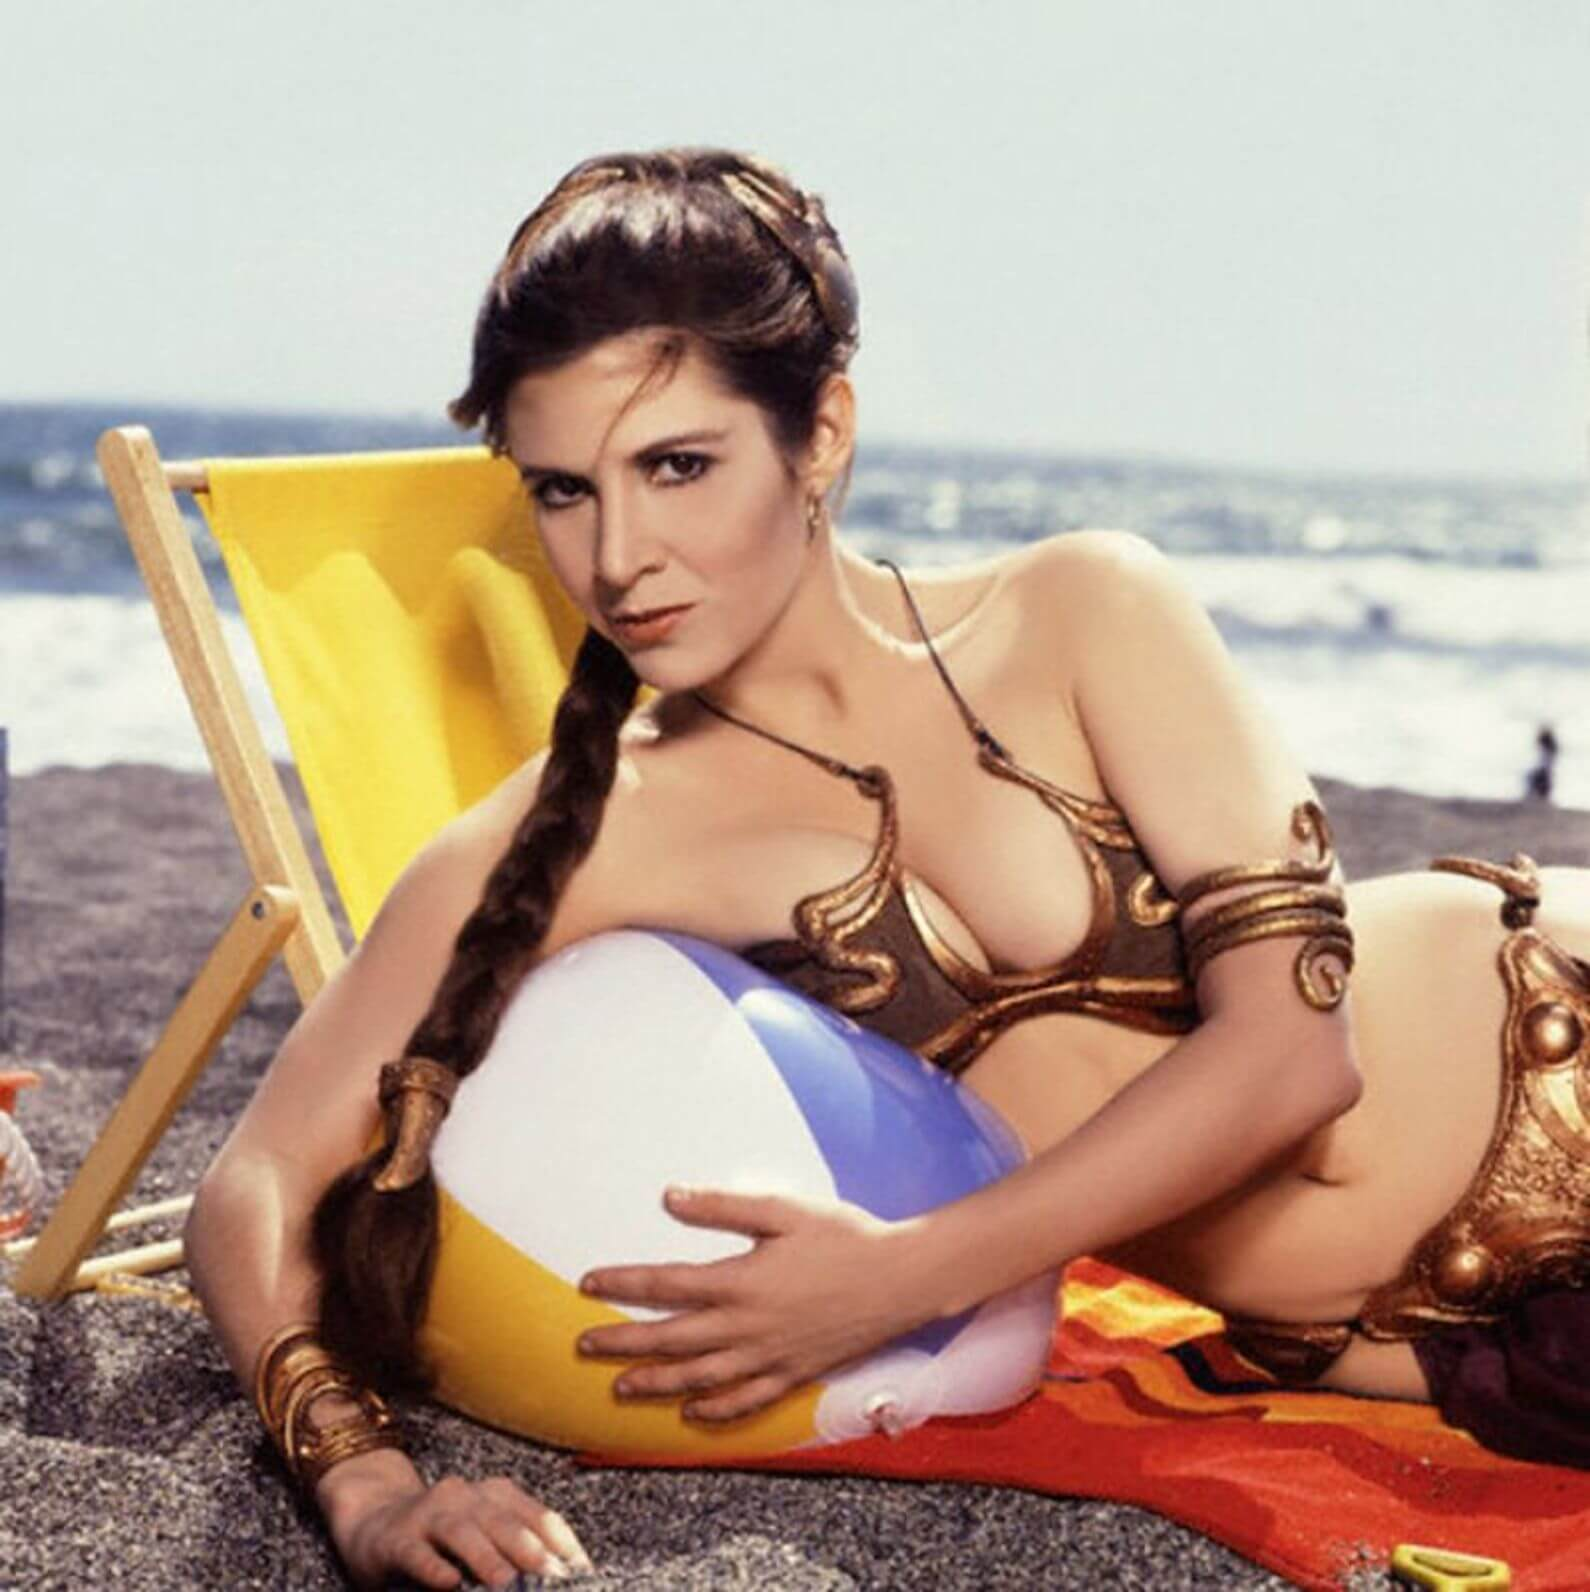 Carrie Fisher sexy look pics